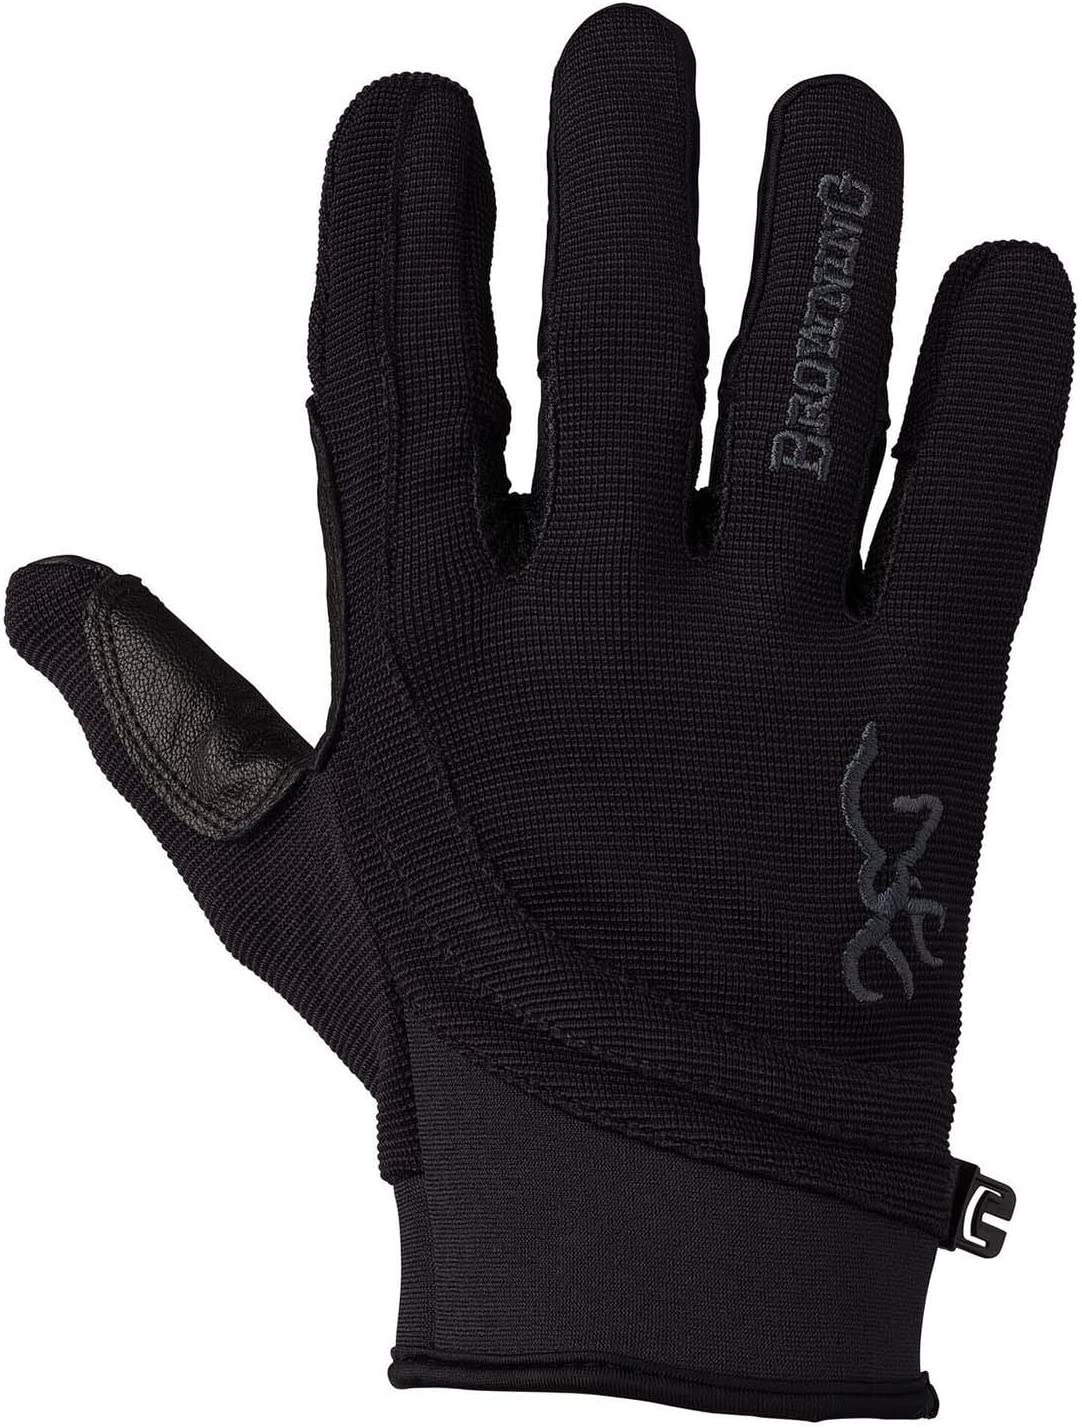 Browning 70% OFF Ranking TOP12 Outlet 3070209904 Gloves XL Ace Black